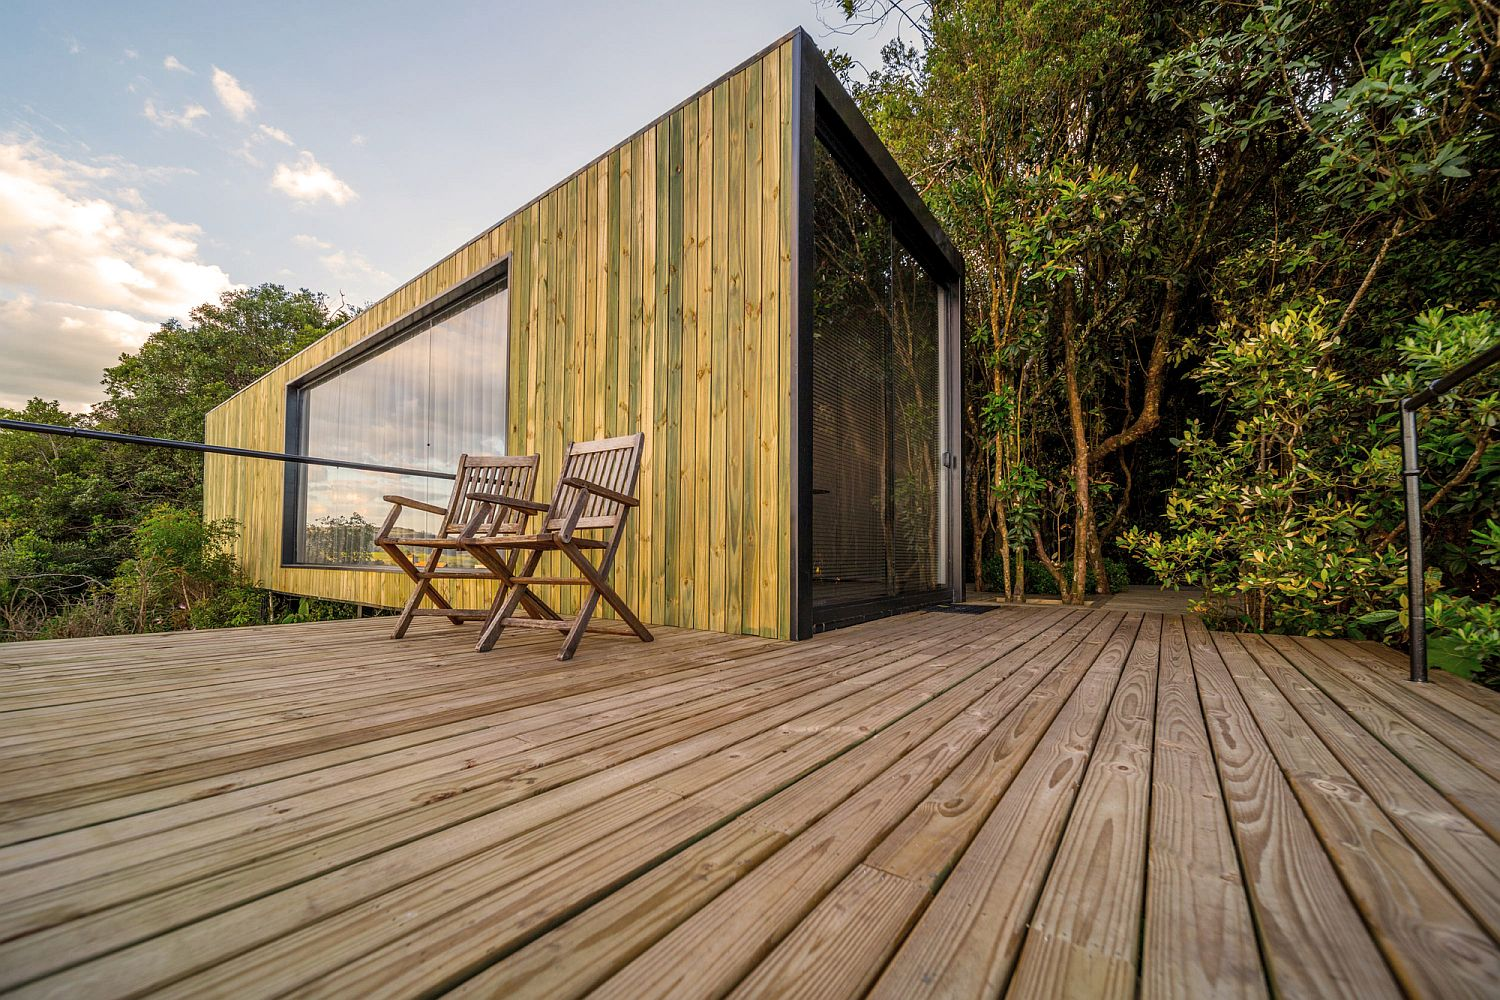 Deck-and-outdoors-of-the-cain-draped-in-wood-and-surrounded-by-greenery